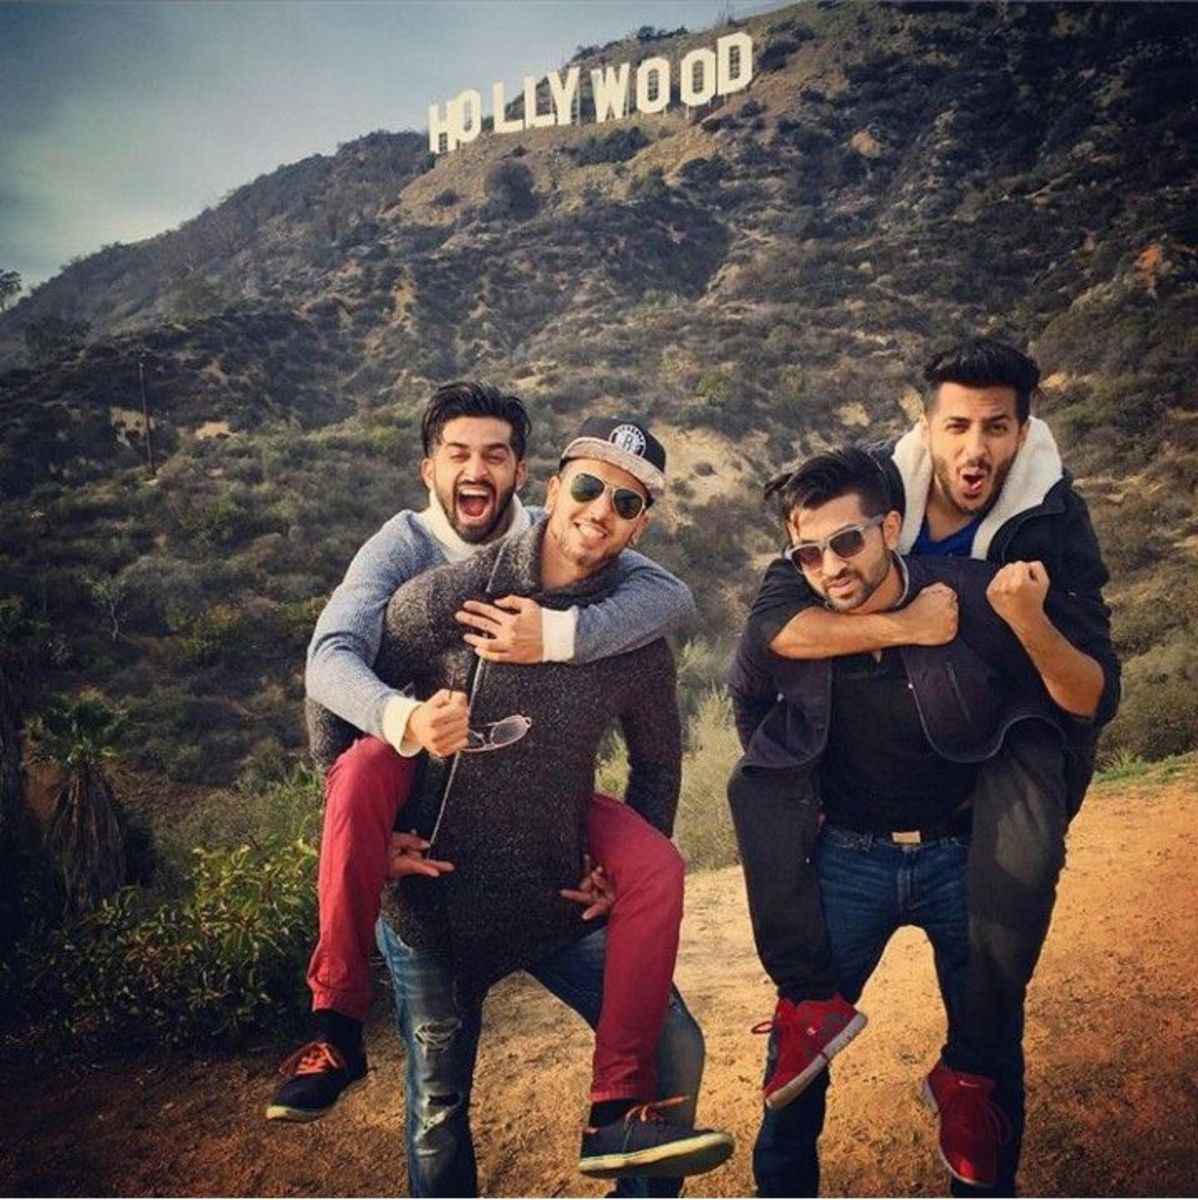 DhoomBros in a fun-loving picture.